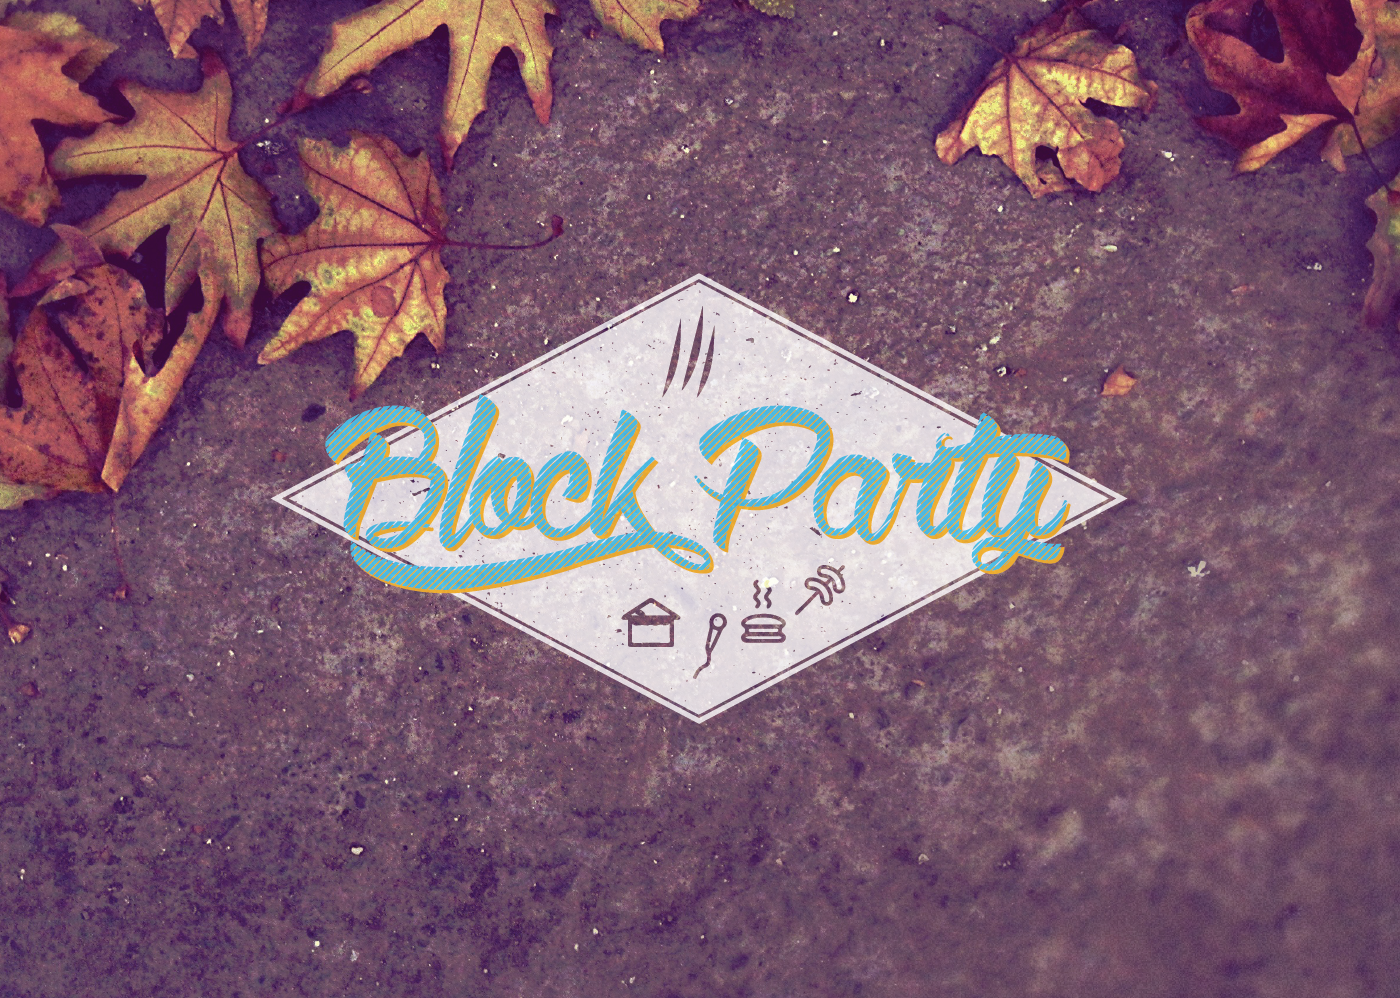 BlockParty_Header.png